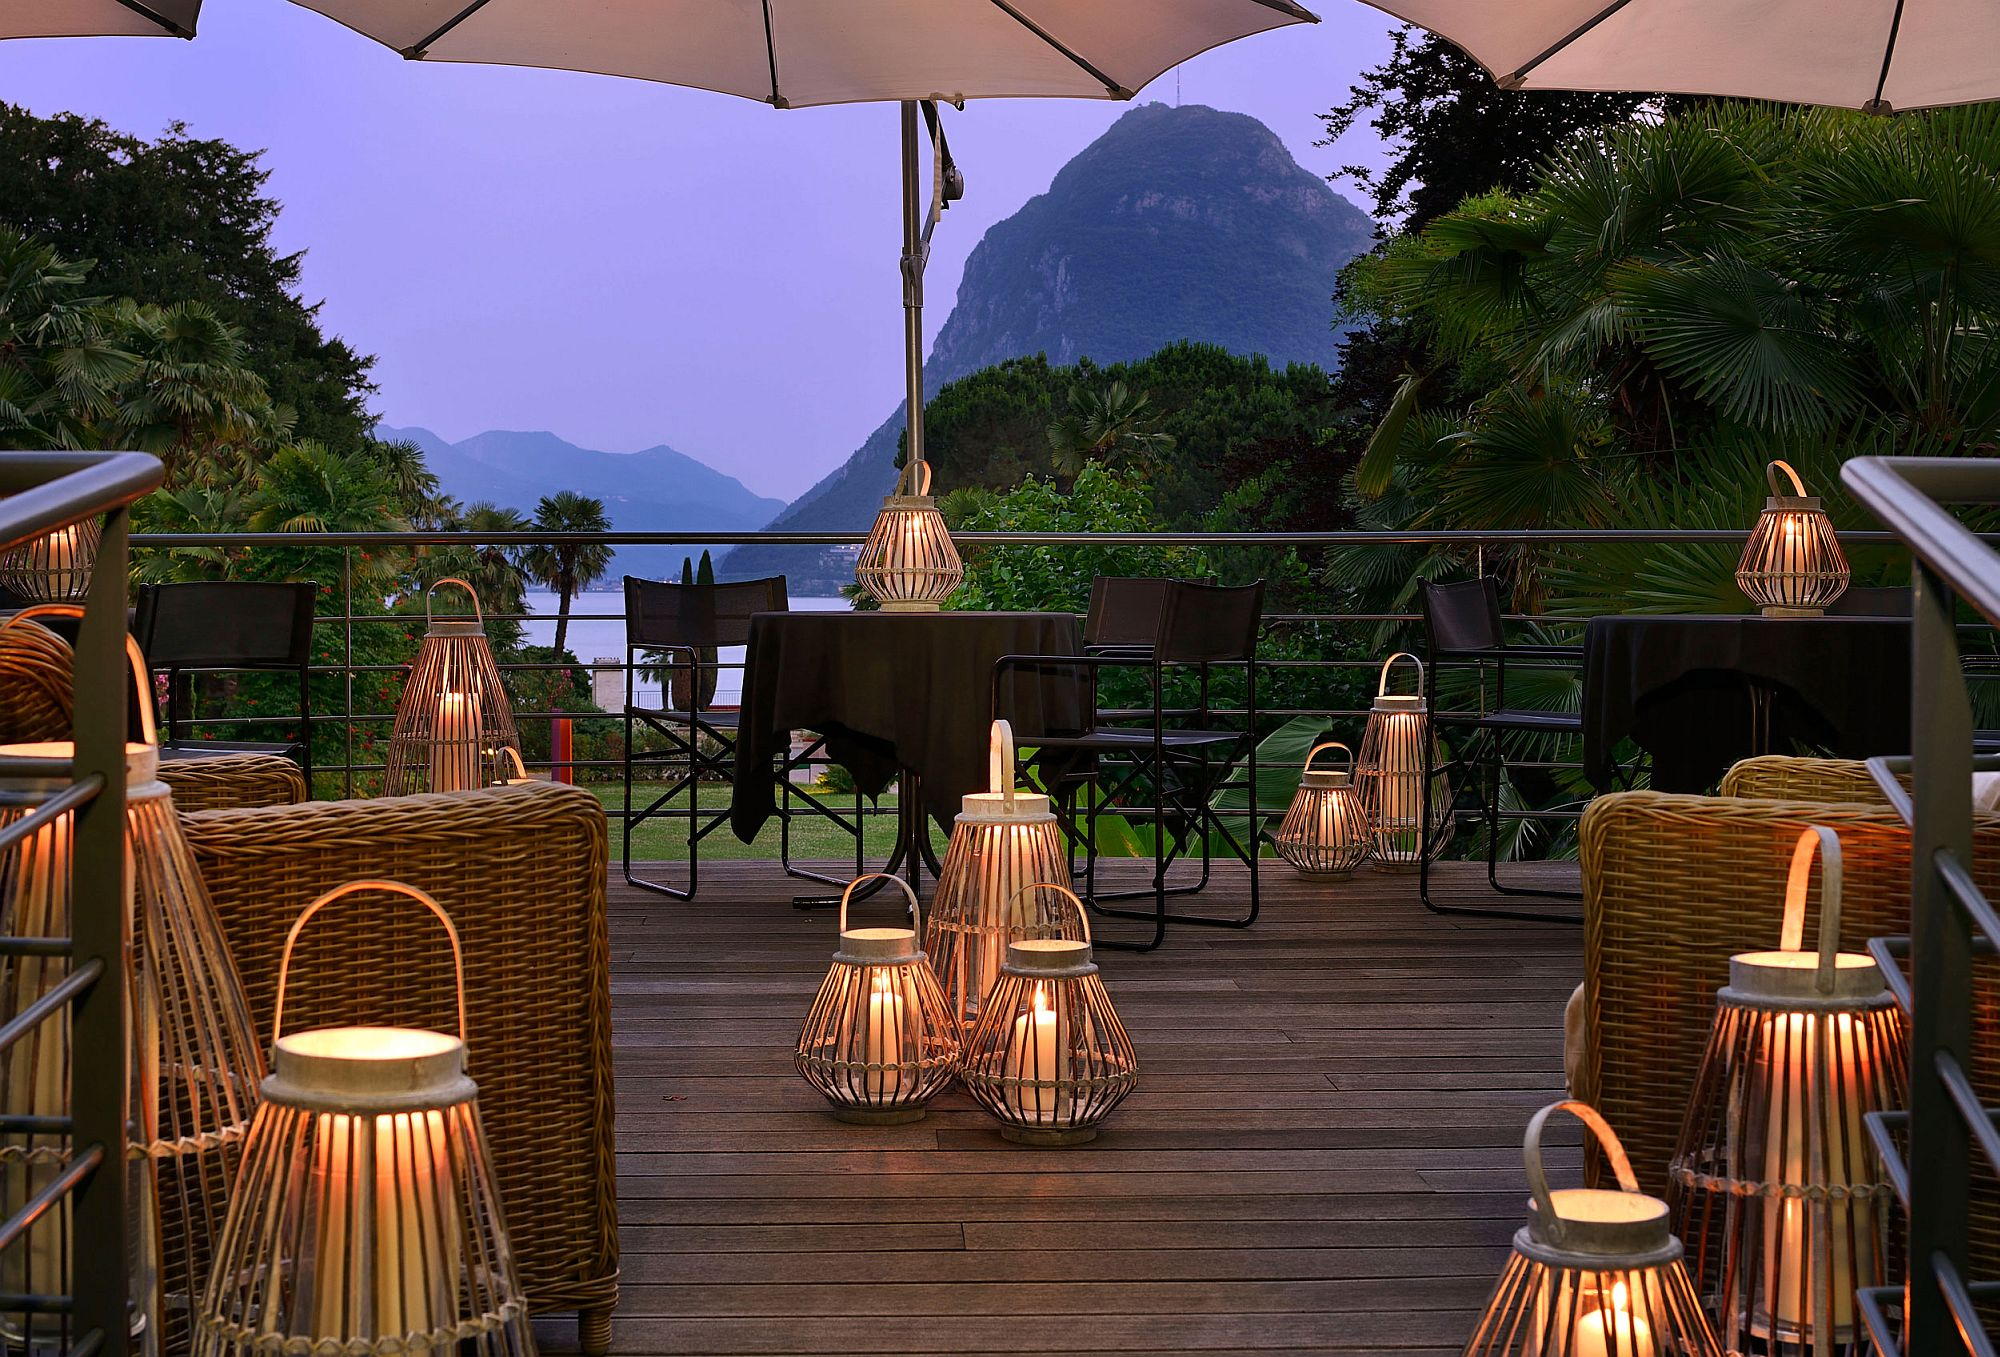 Lake Lugano and a tropical garden surrond the stunning hotel